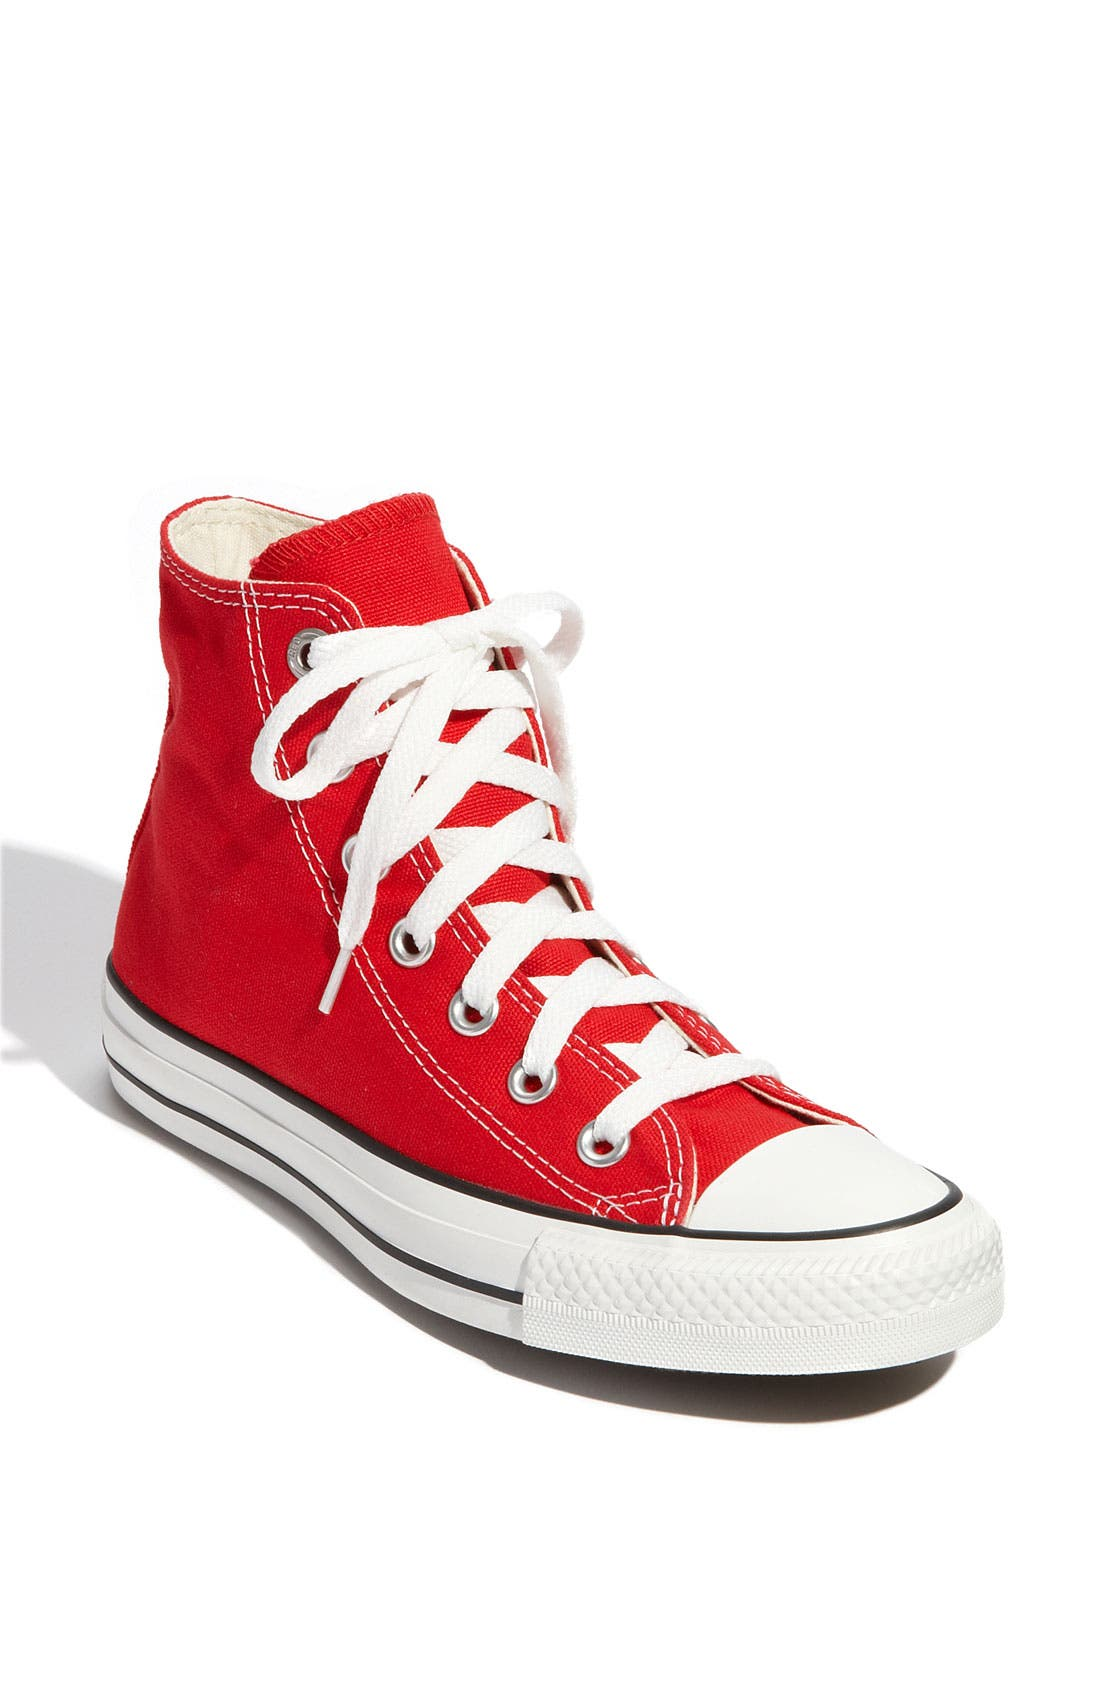 Converse CHUCK TAYLOR HIGH TOP SNEAKER